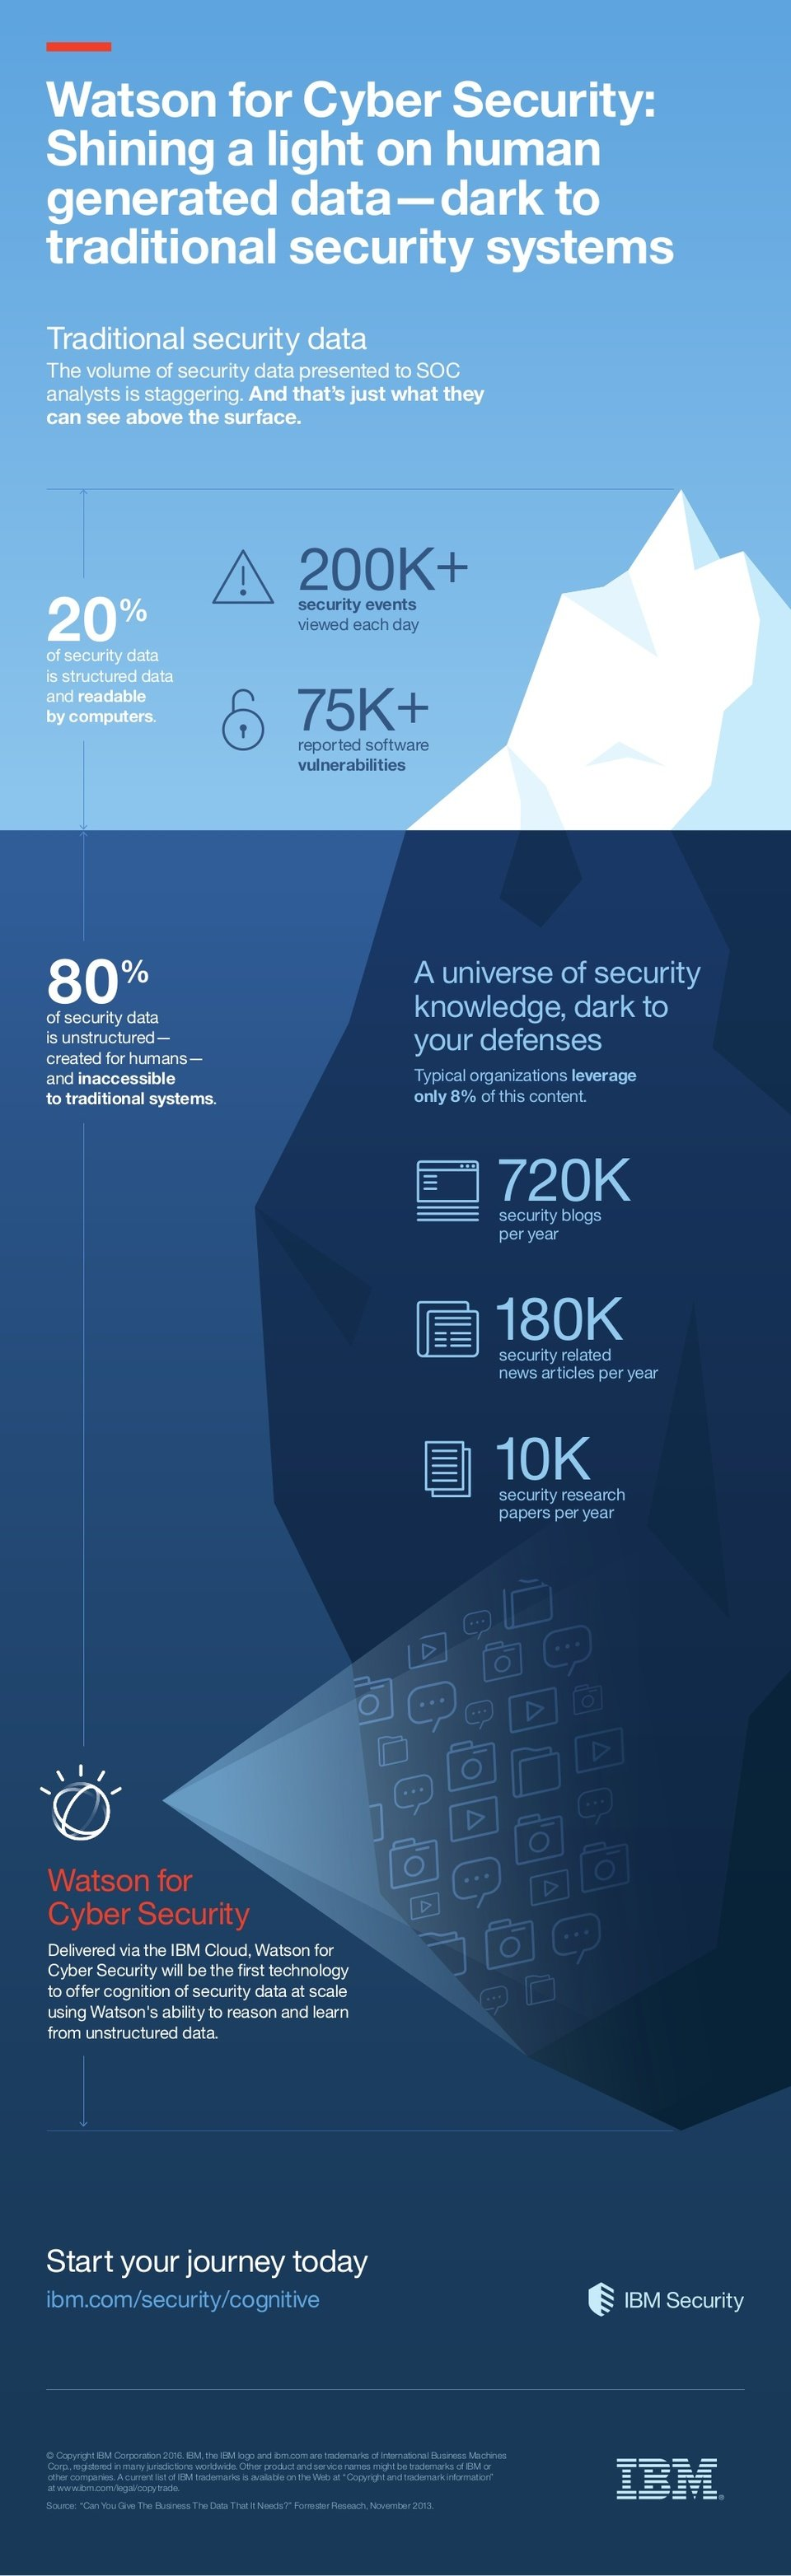 infographic-watson-for-cyber-security-eip.jpg